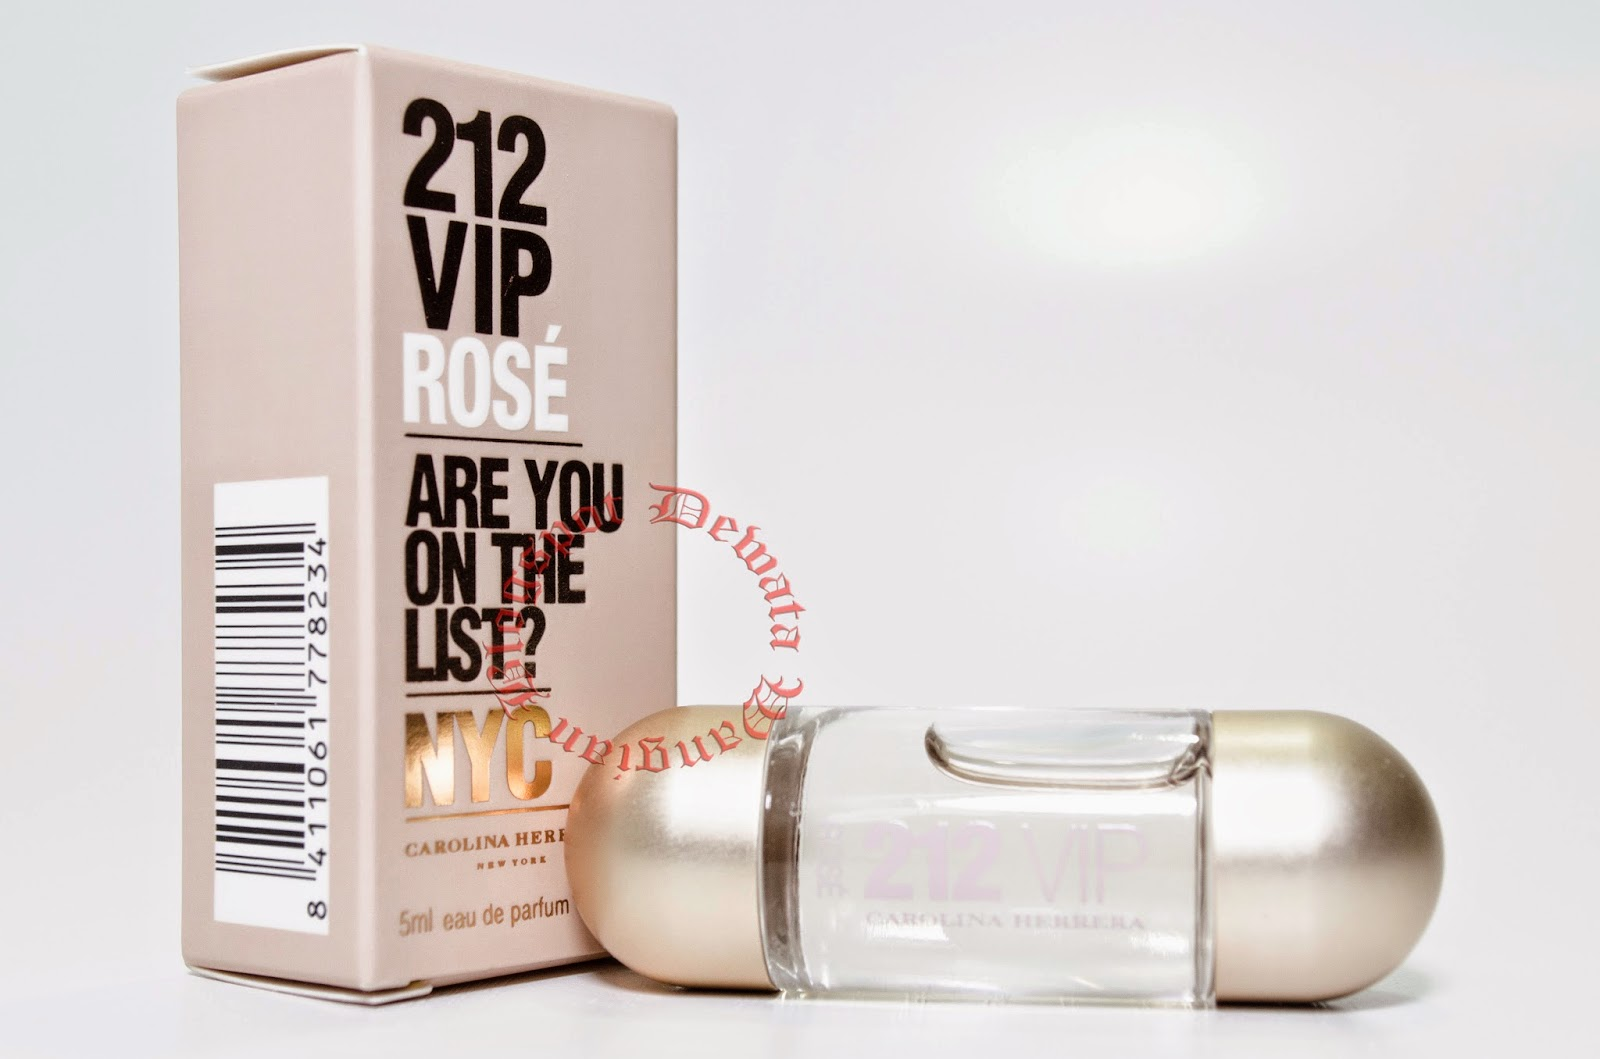 Carolina Herrera 212 VIP Rose Miniature Perfume